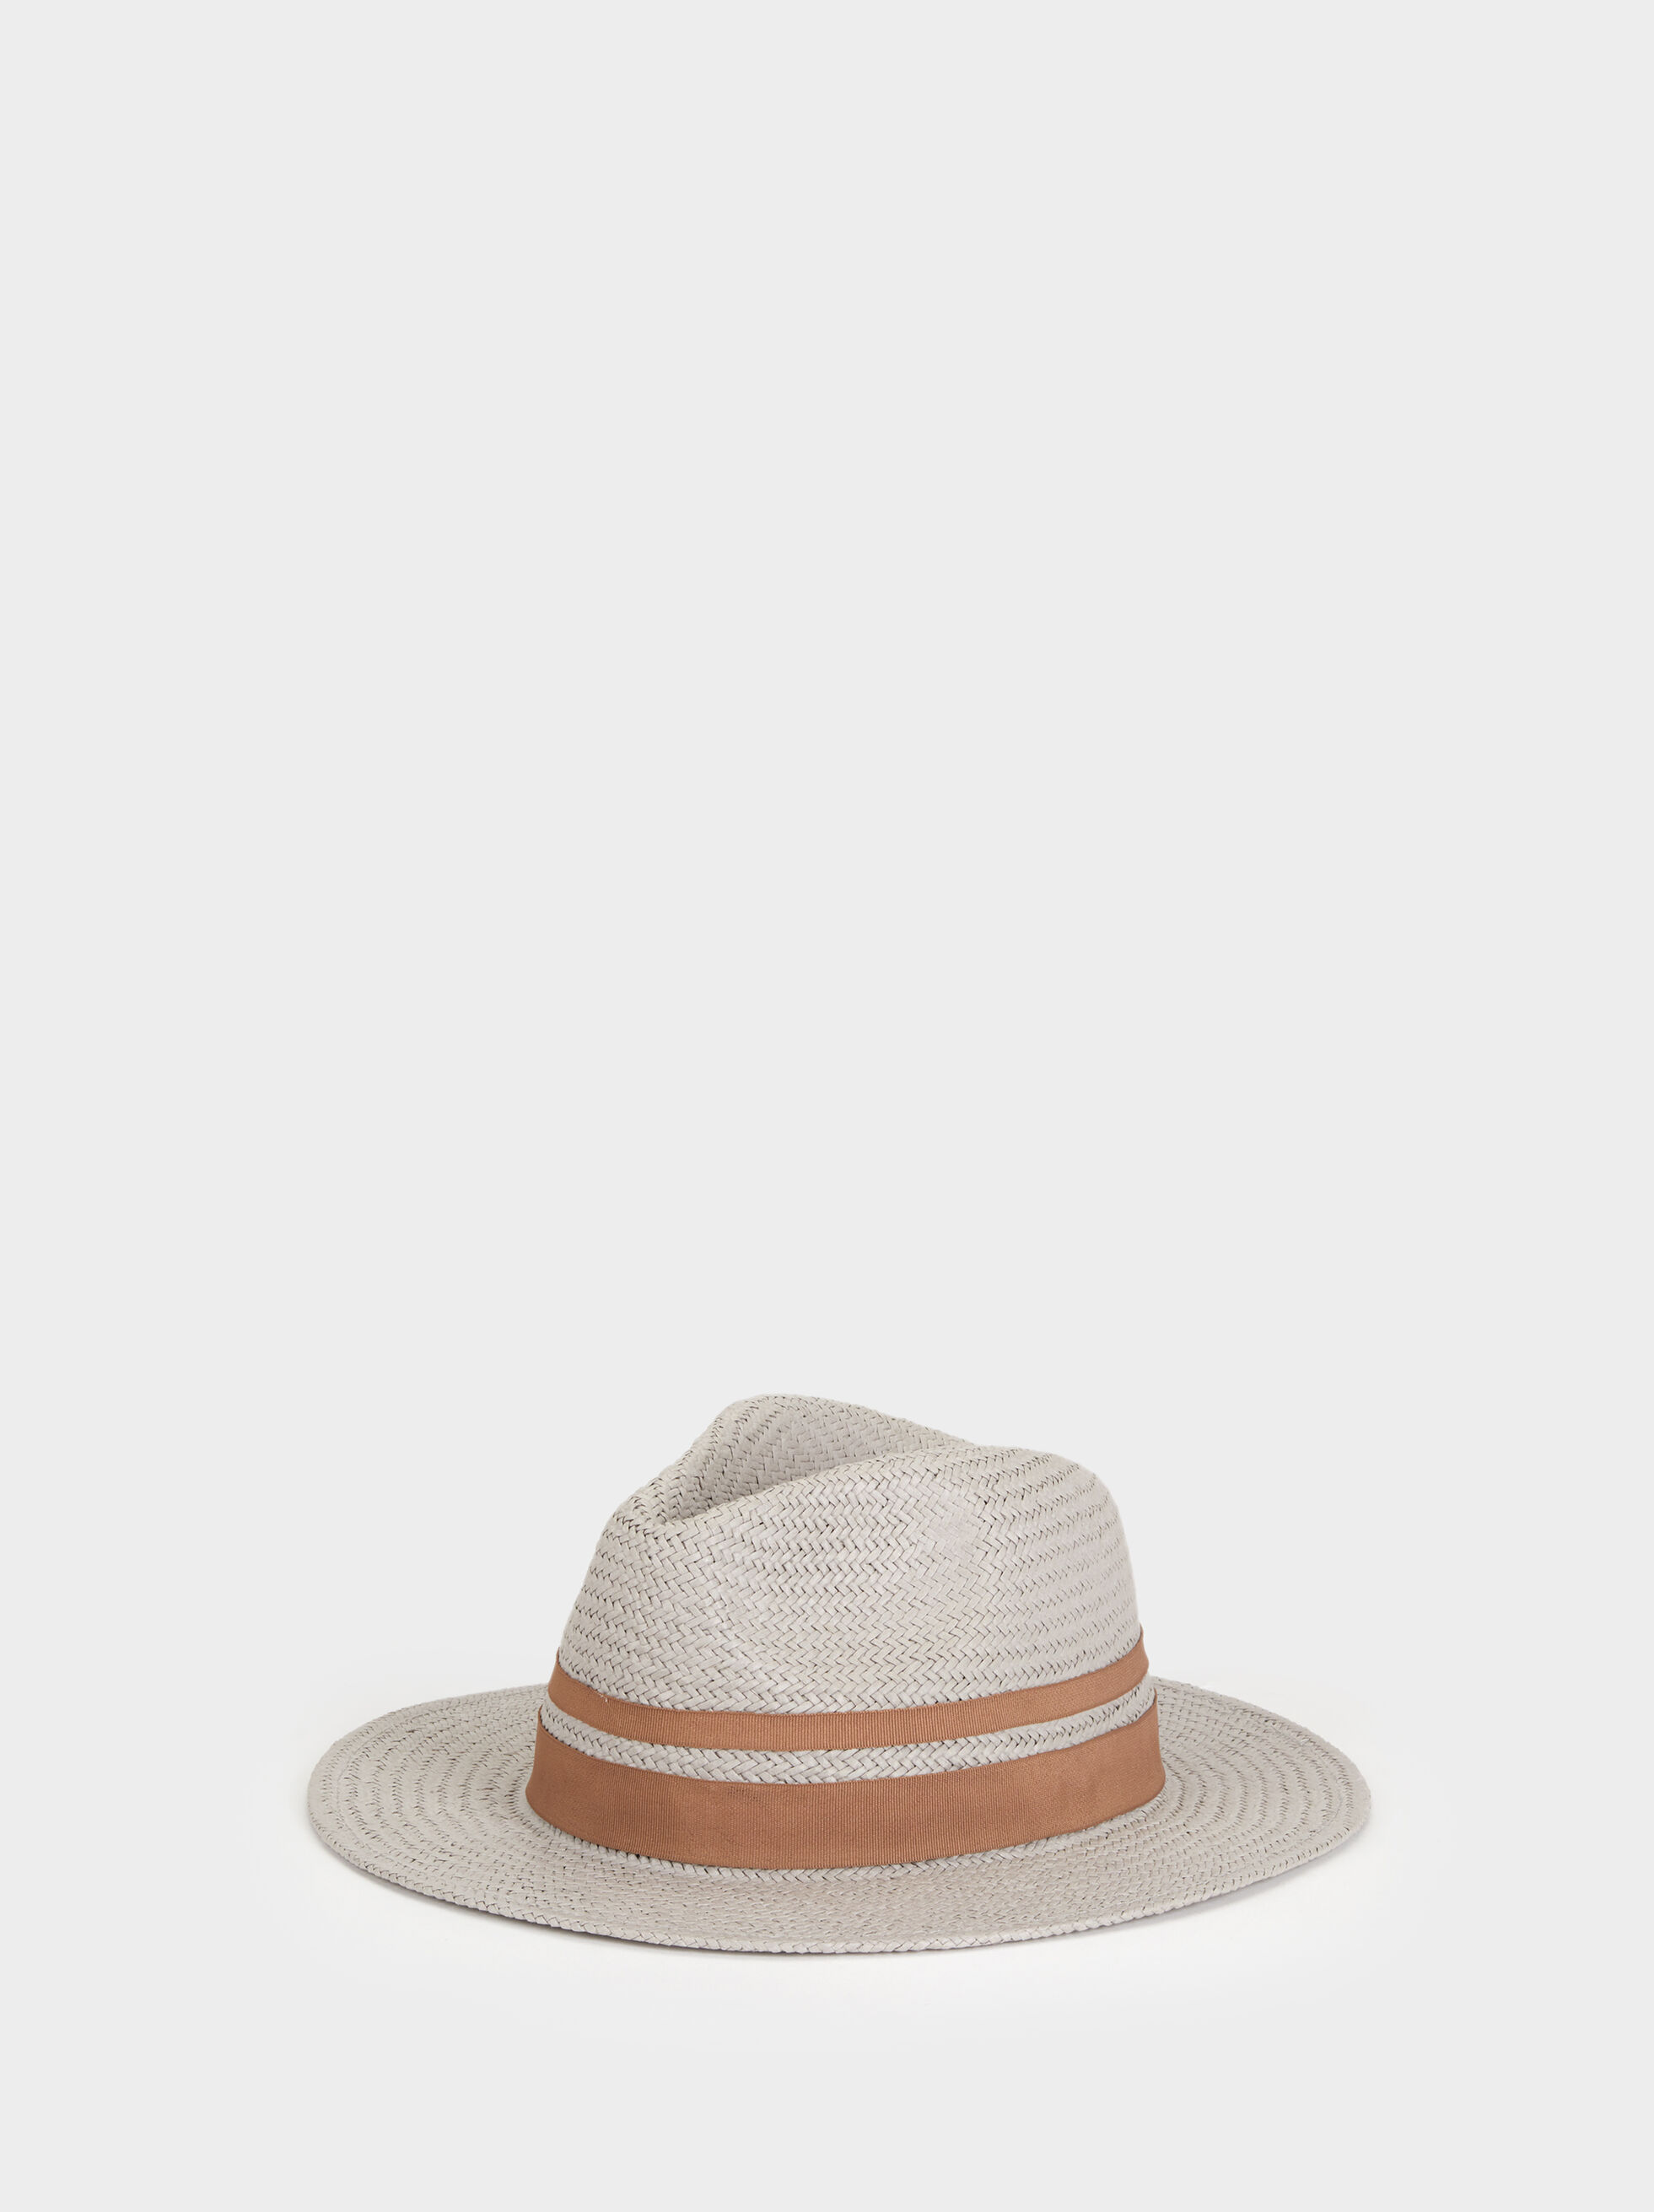 Hat With Contrast Band, , hi-res